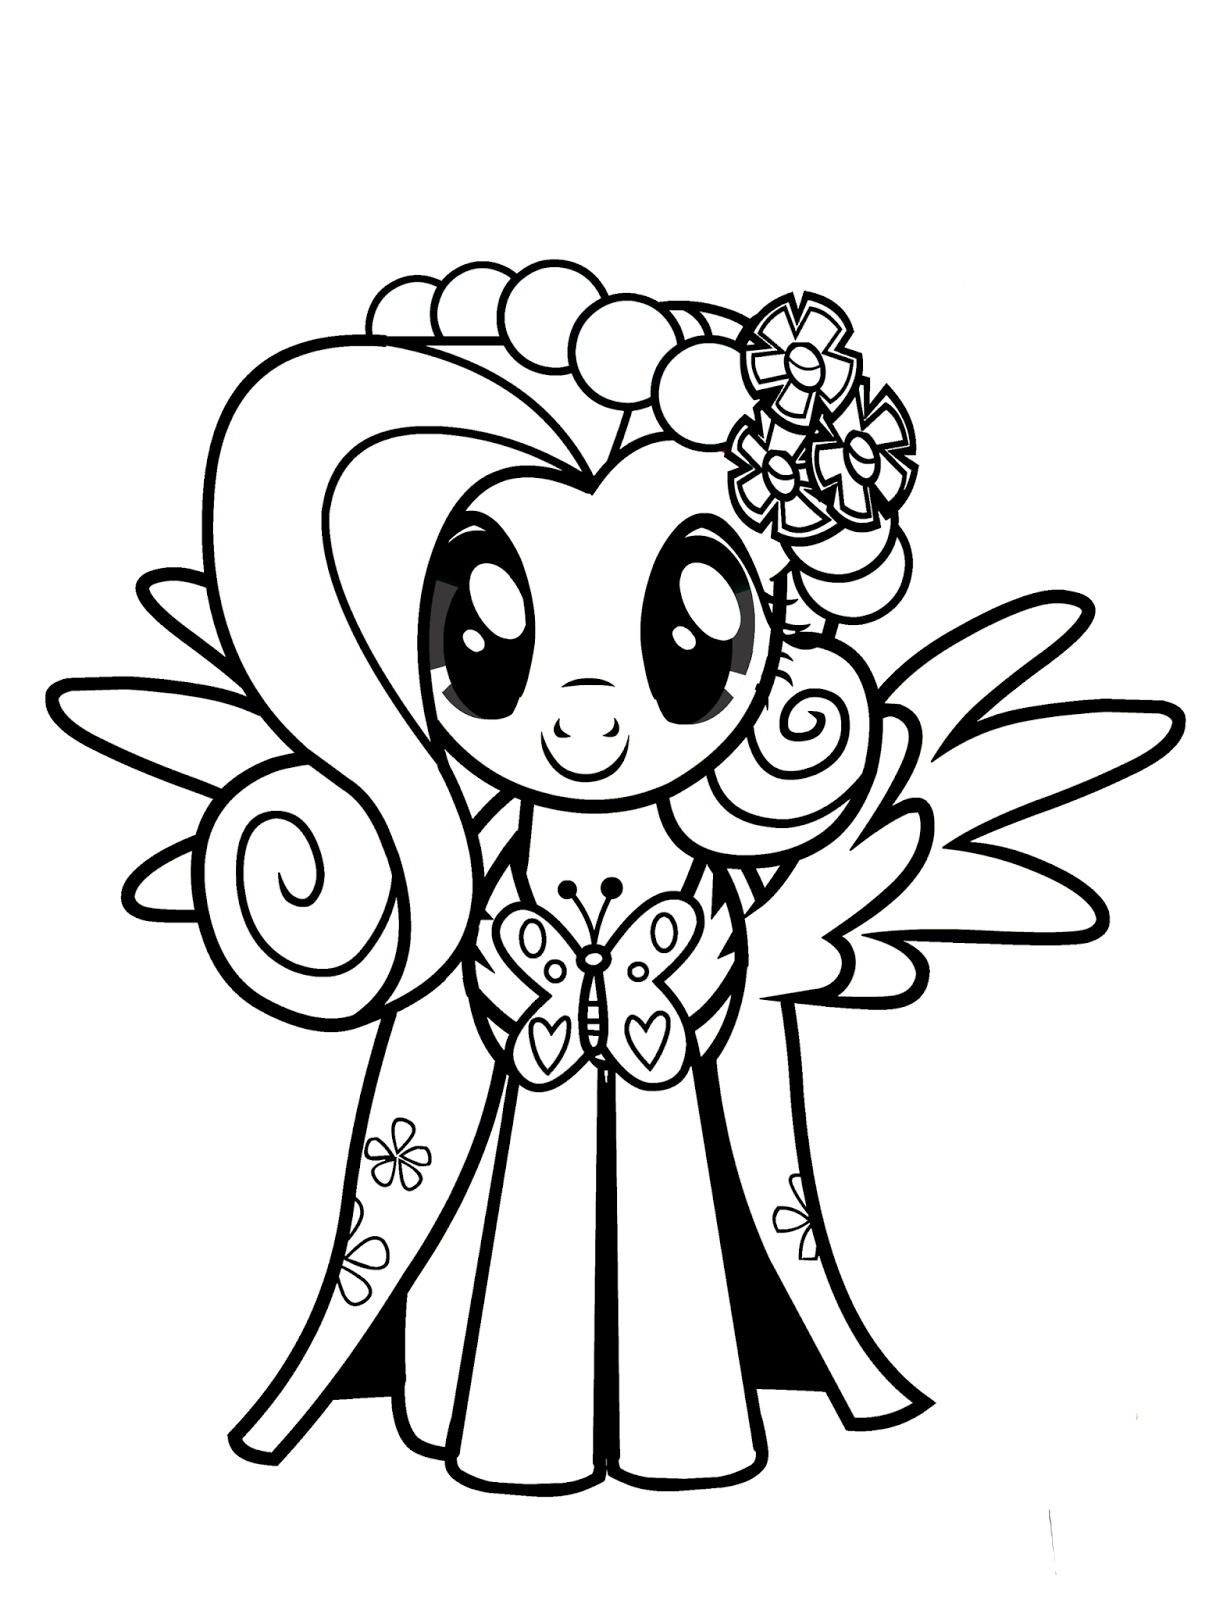 colouring pages little pony my little pony coloring pages team colors pony pages colouring little